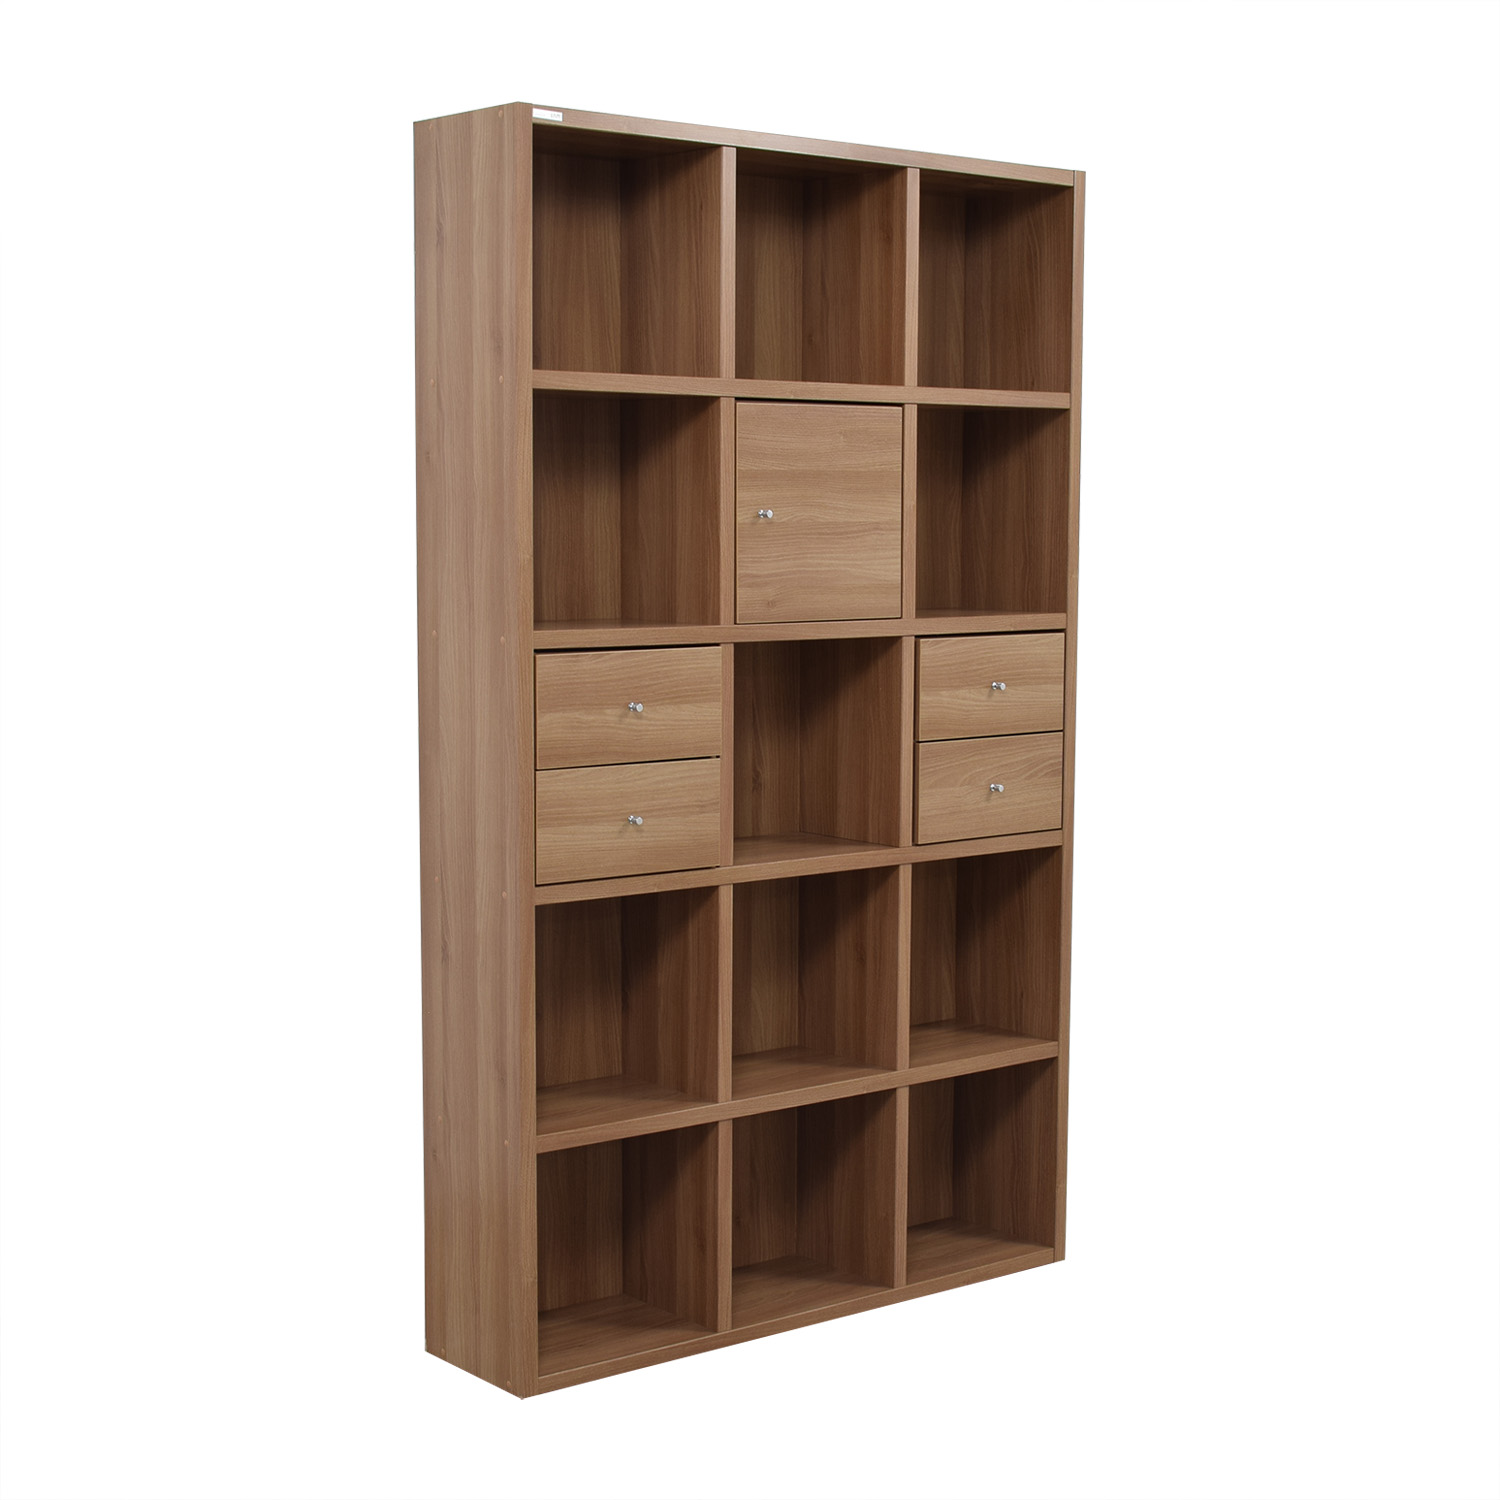 buy Hansaem Natural Wood Bookshelf with Drawers and Storage Hansaem